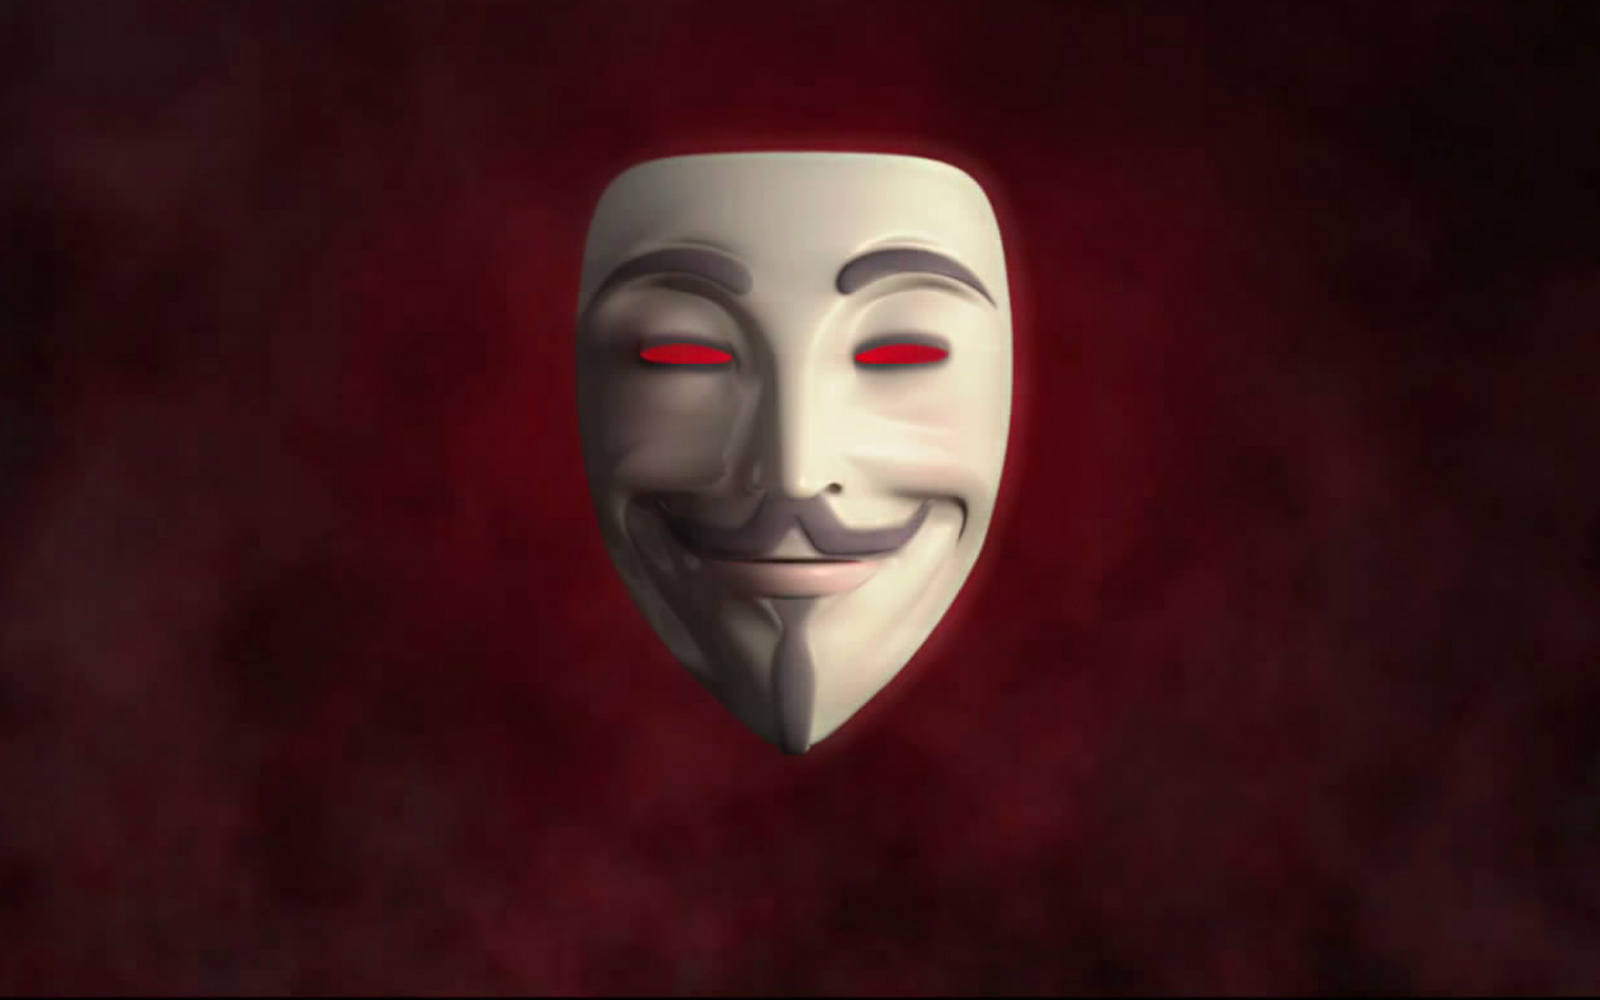 V For Vendetta Mask Wallpaper trololo blogg: ...